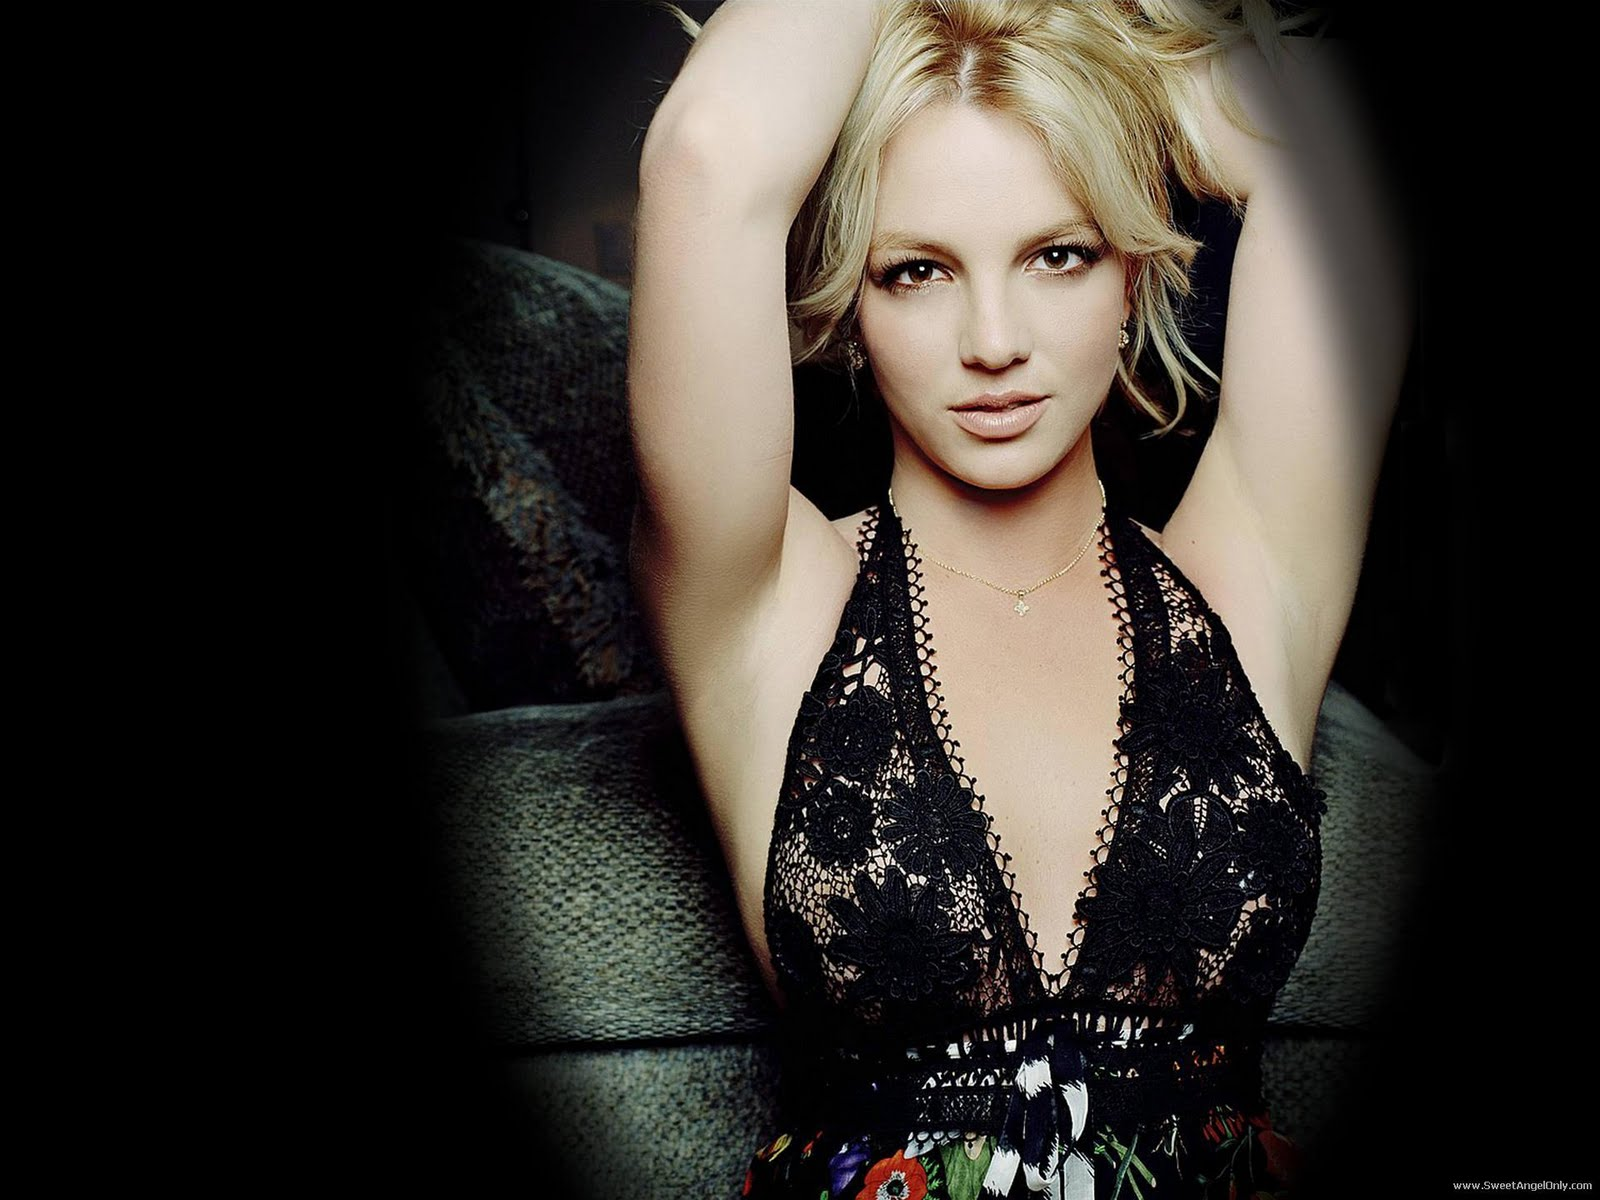 http://2.bp.blogspot.com/-IQ9gocG6Nww/TtjOEcECzyI/AAAAAAAABhY/foE6VJwfAHk/s1600/britney_spears_hollywood_model_wallpaper-1600x1200-07.jpg